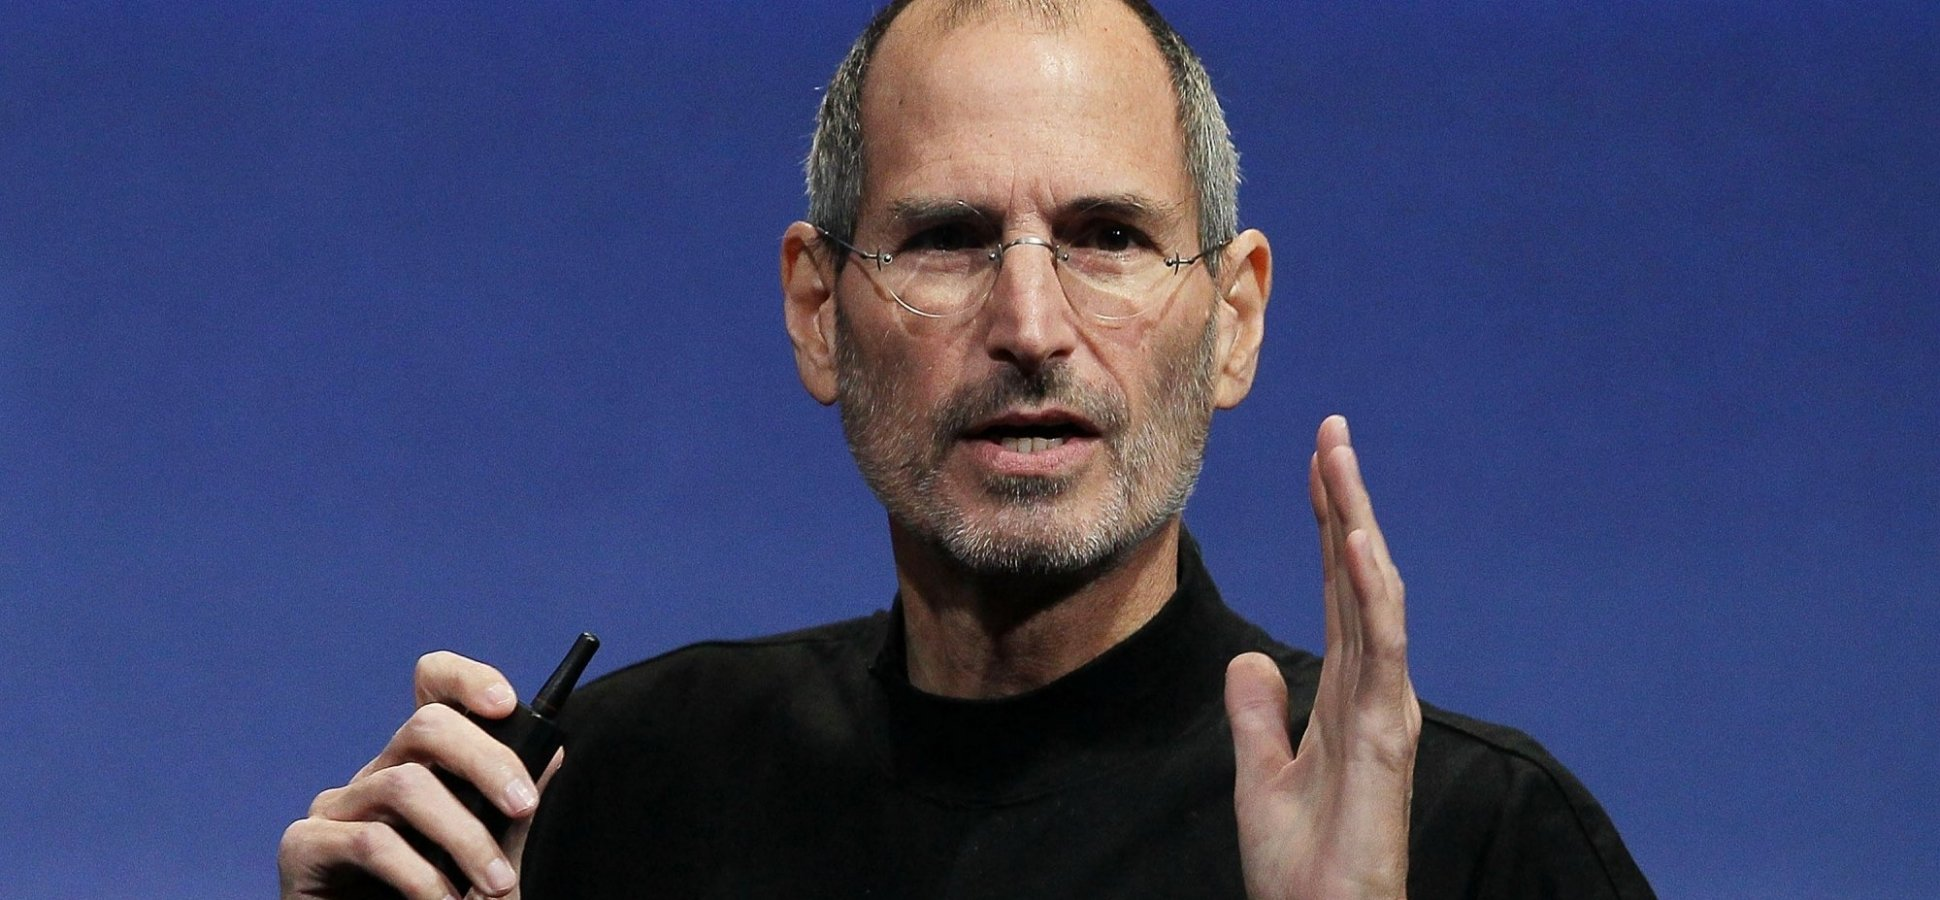 According to Steve Jobs the Only Way to Succeed Is to Abandon 1,000 Good Ideas